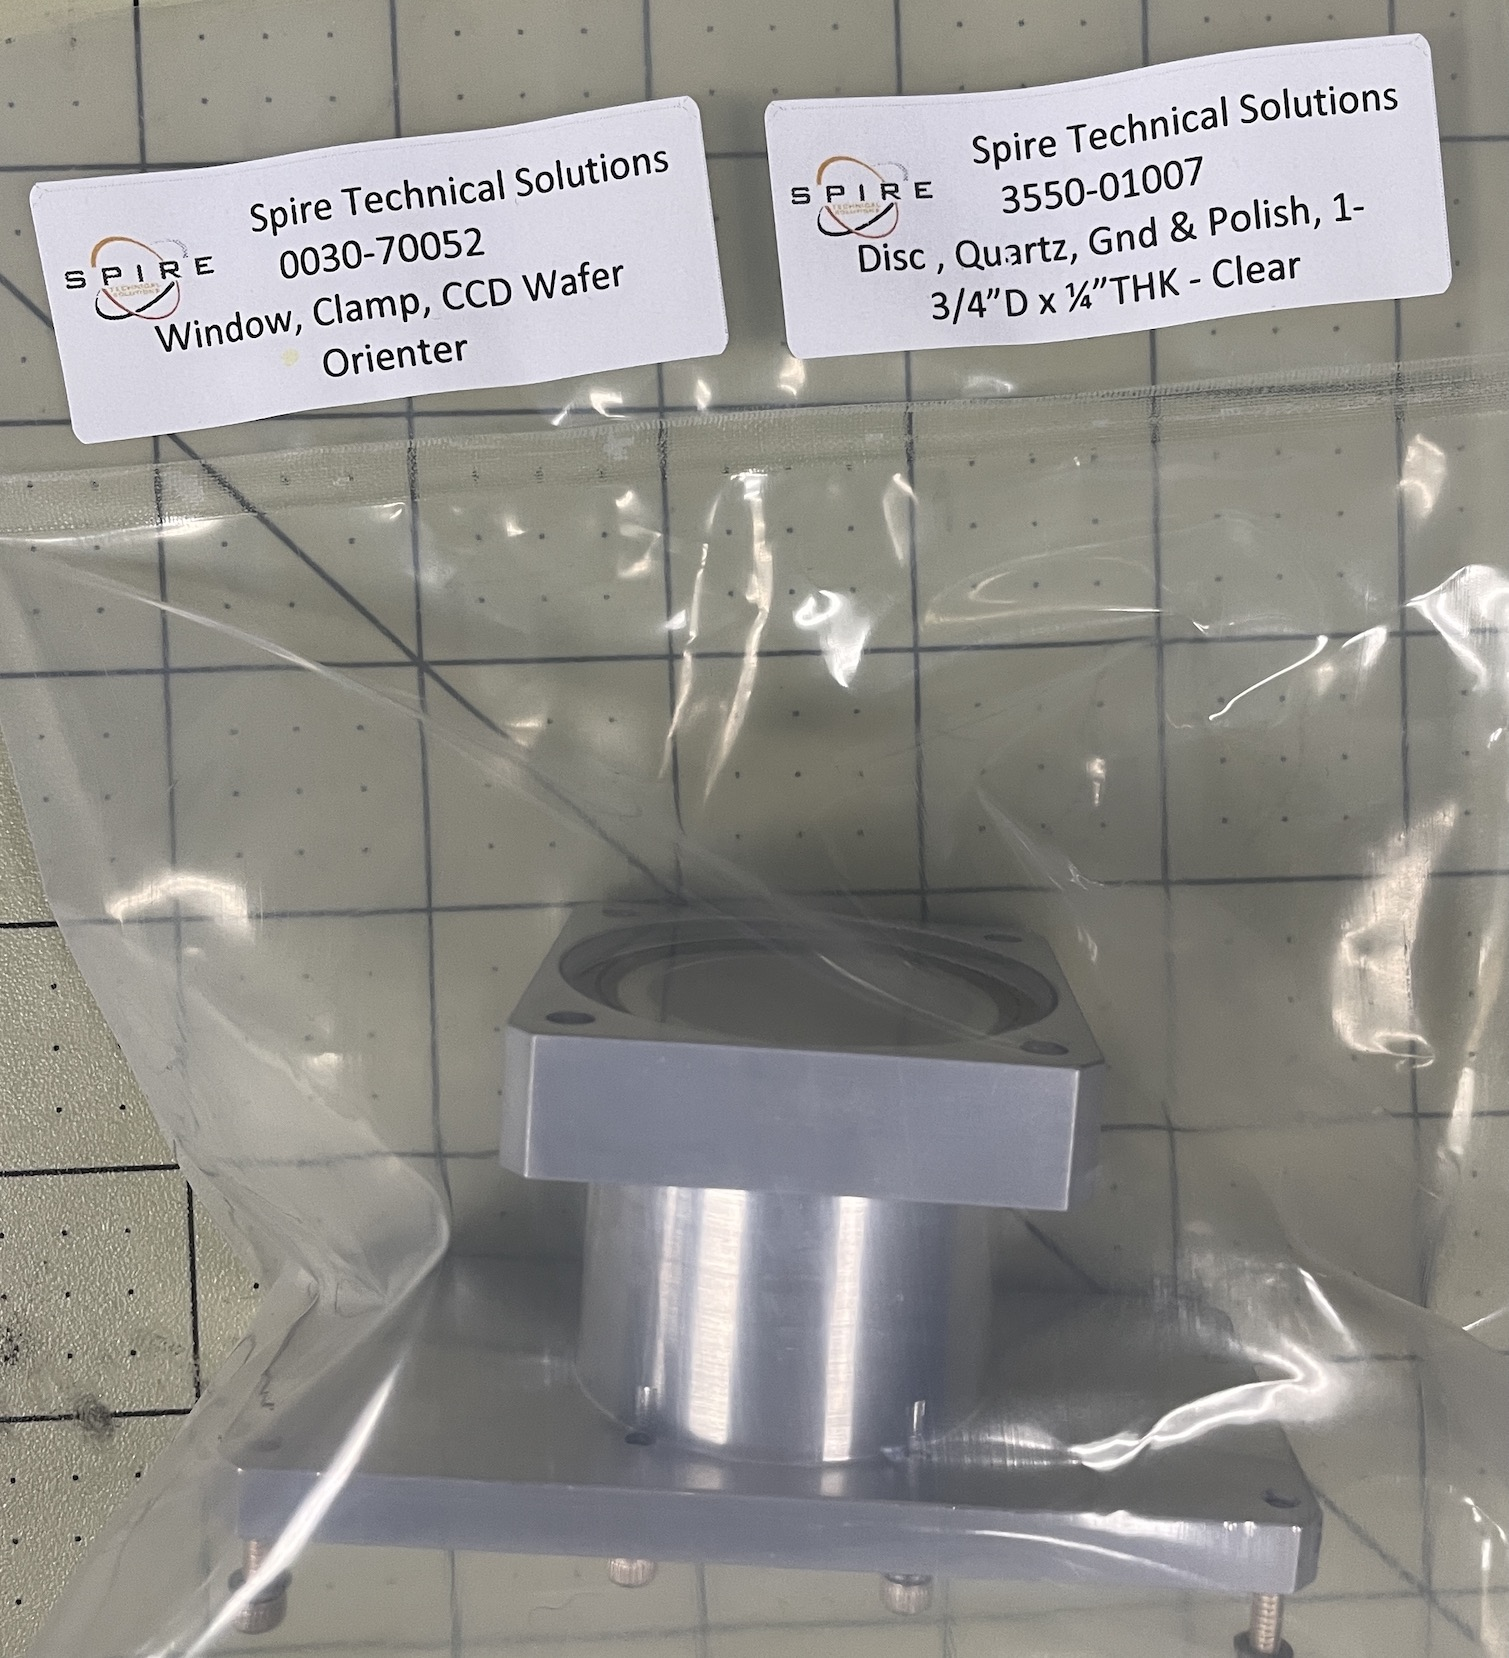 Window, Clamp, CCD Wafer Orienter